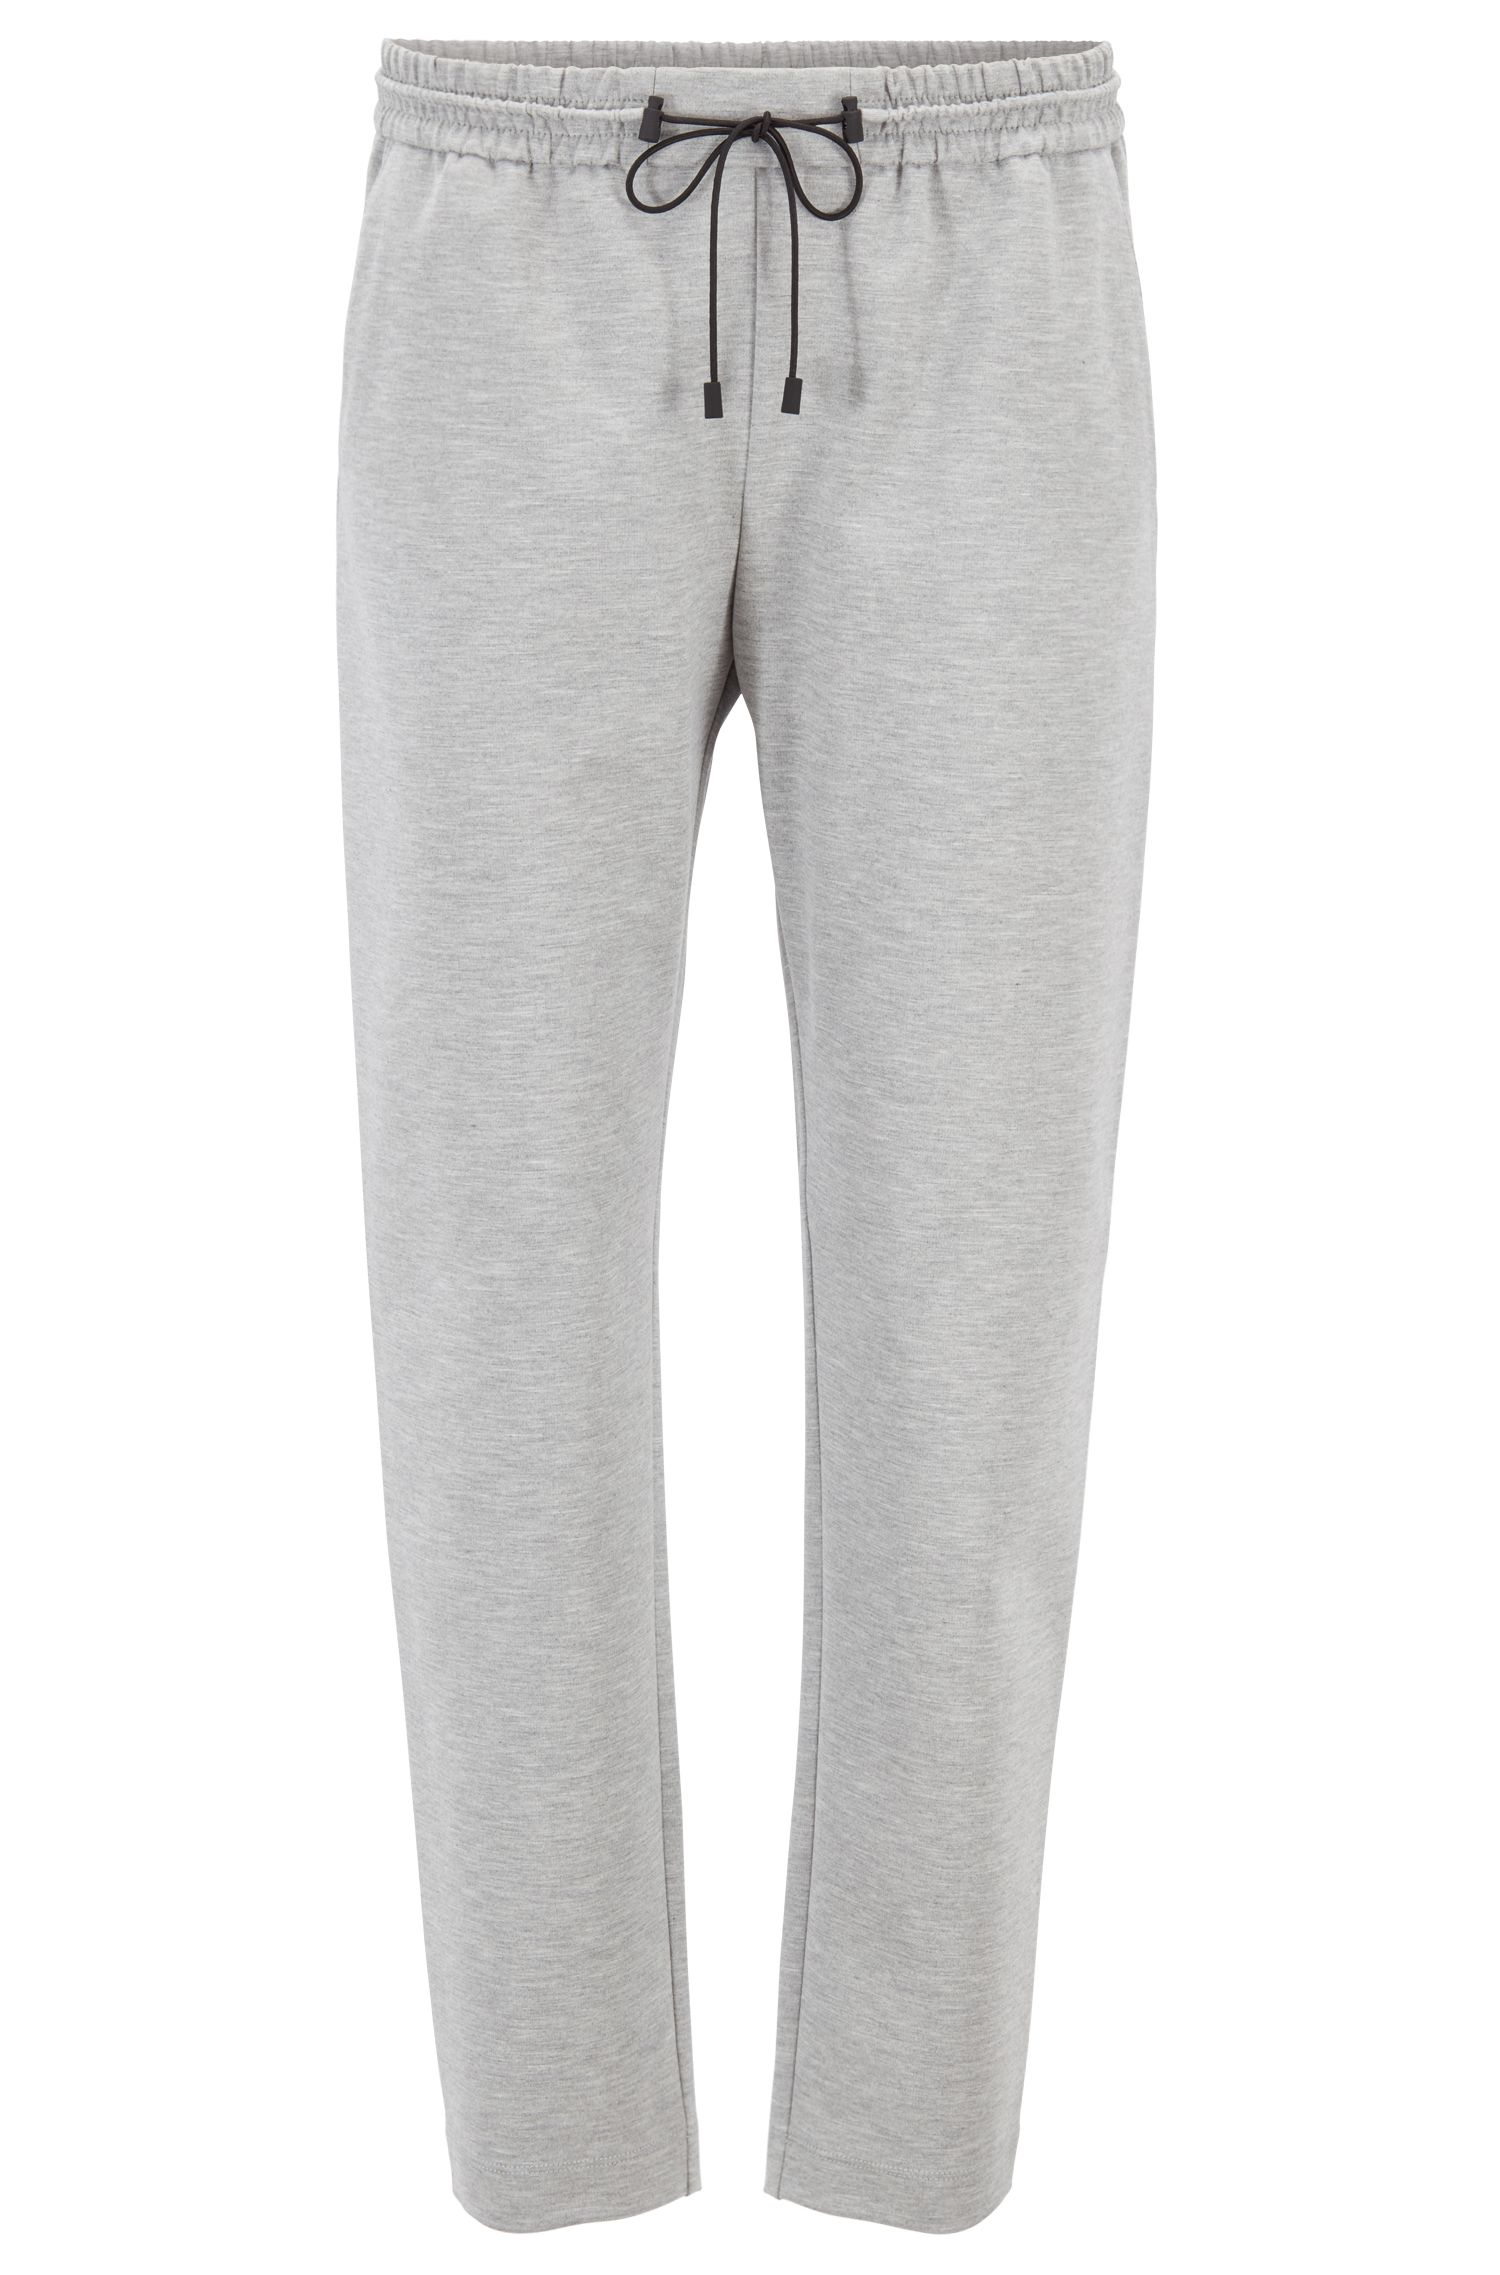 Relaxed-fit jogging trousers in stretch jersey, Silver